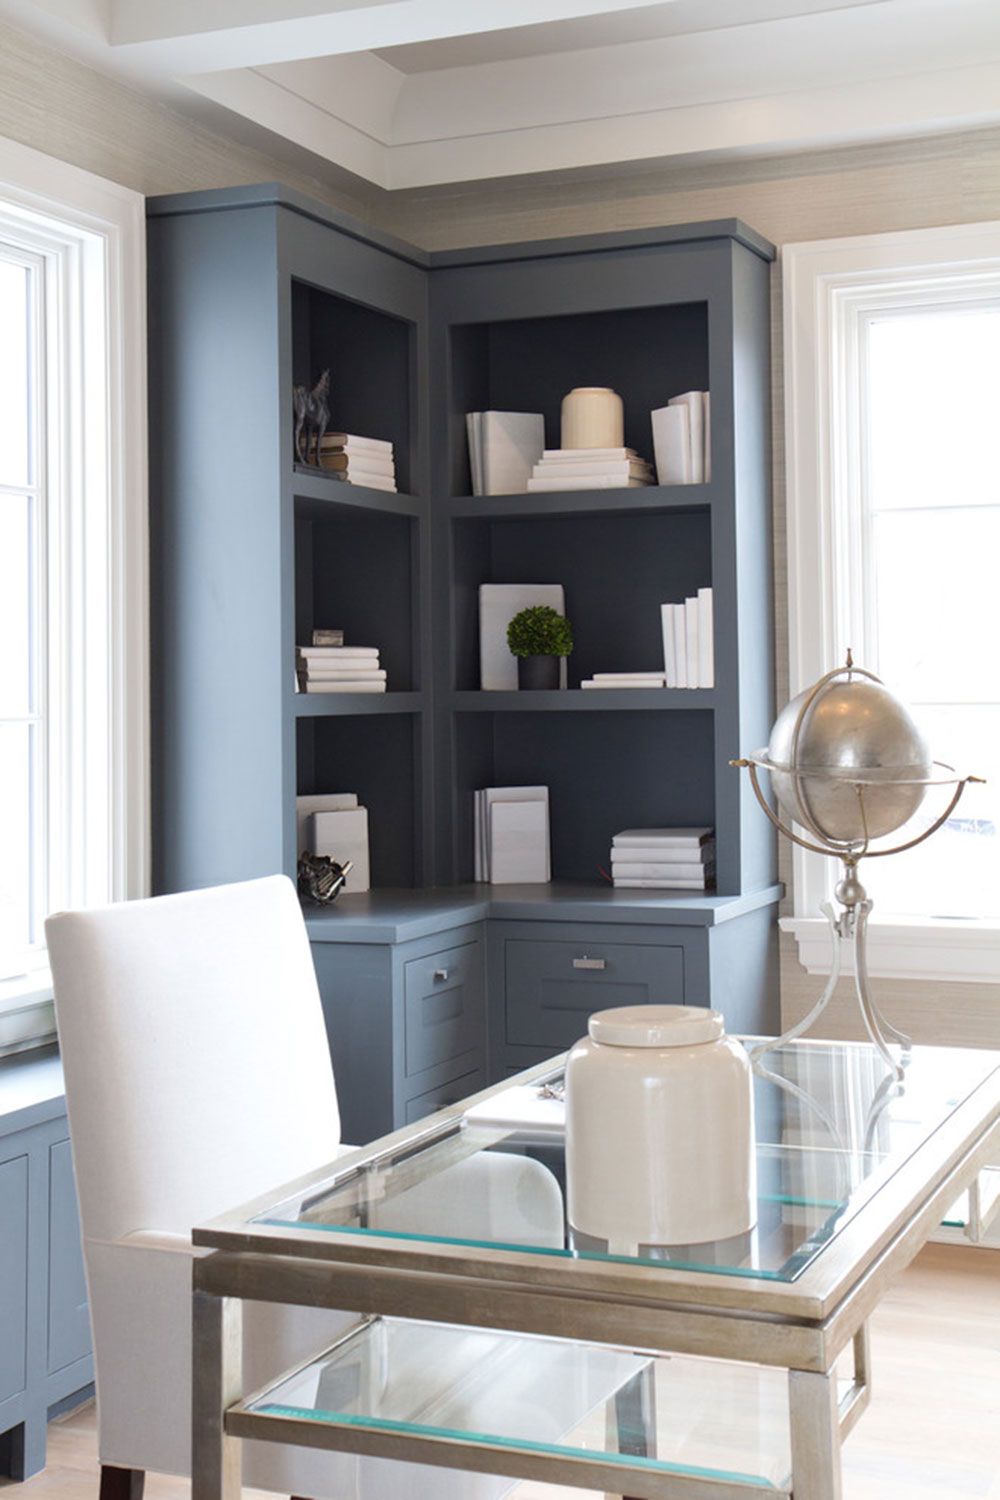 Foating-Shelves-Ideas-Suitable-For-Any-Home3-1 Floating-Shelves Ideas Suitable-For-Any-Home